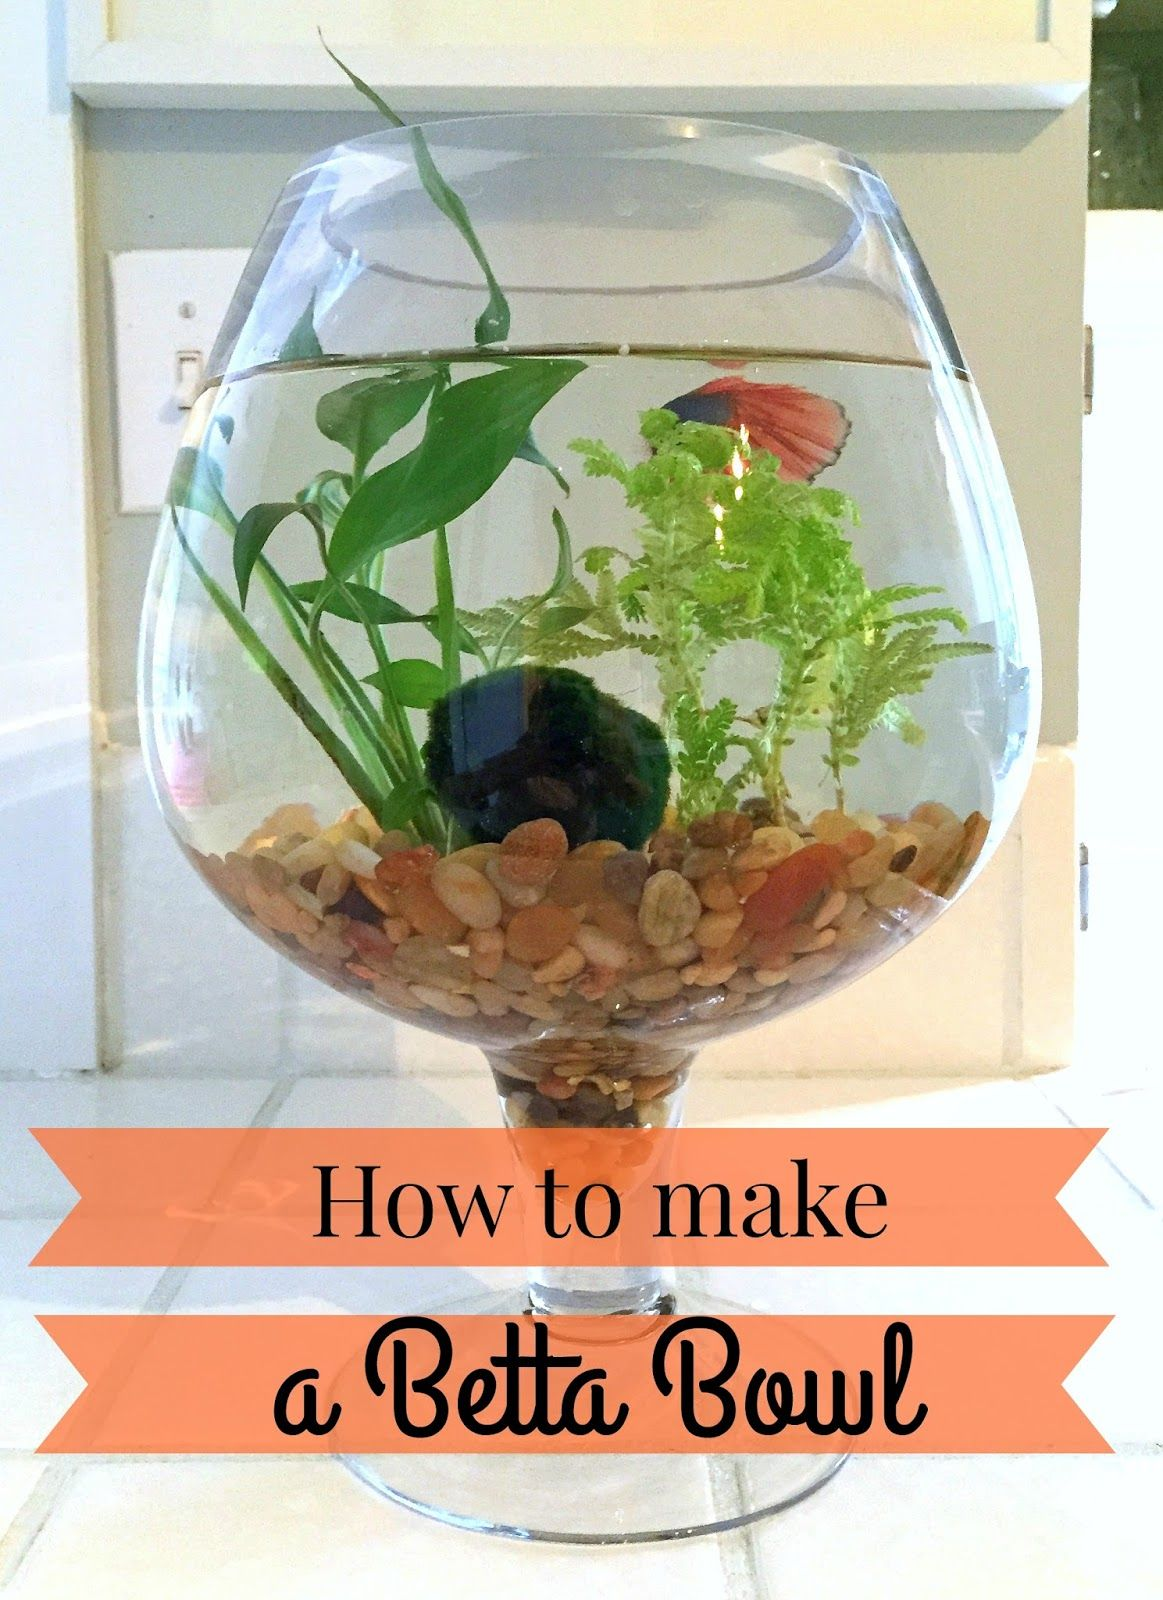 How To Make A Betta Bowl With Live Plants Fish Plants Betta Fish Bowl Fish Tank Plants